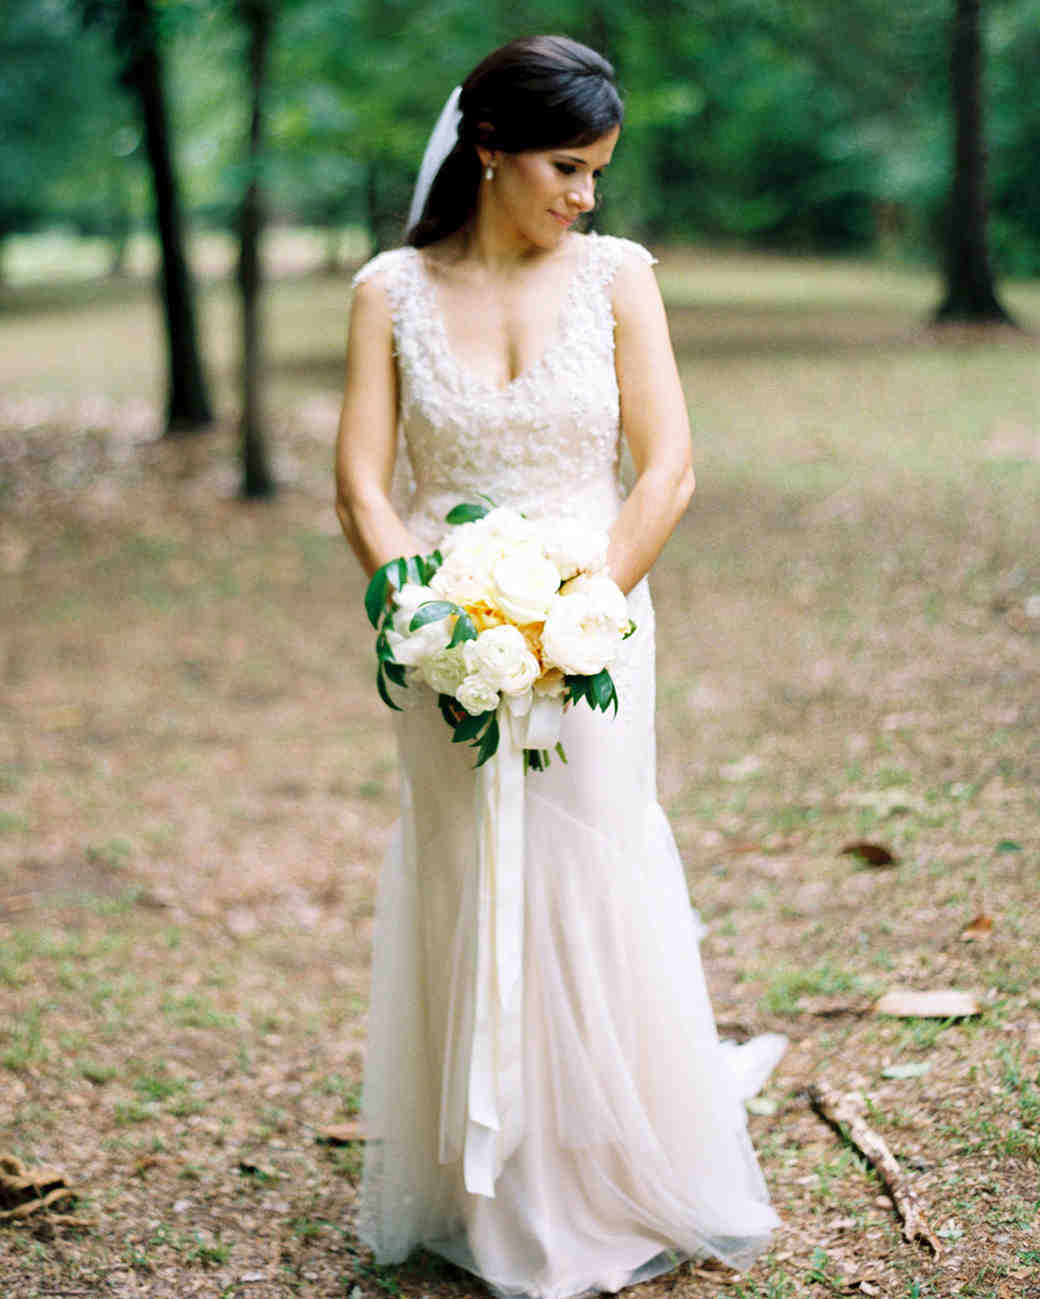 to wear - Neck High wedding dress hair pictures video